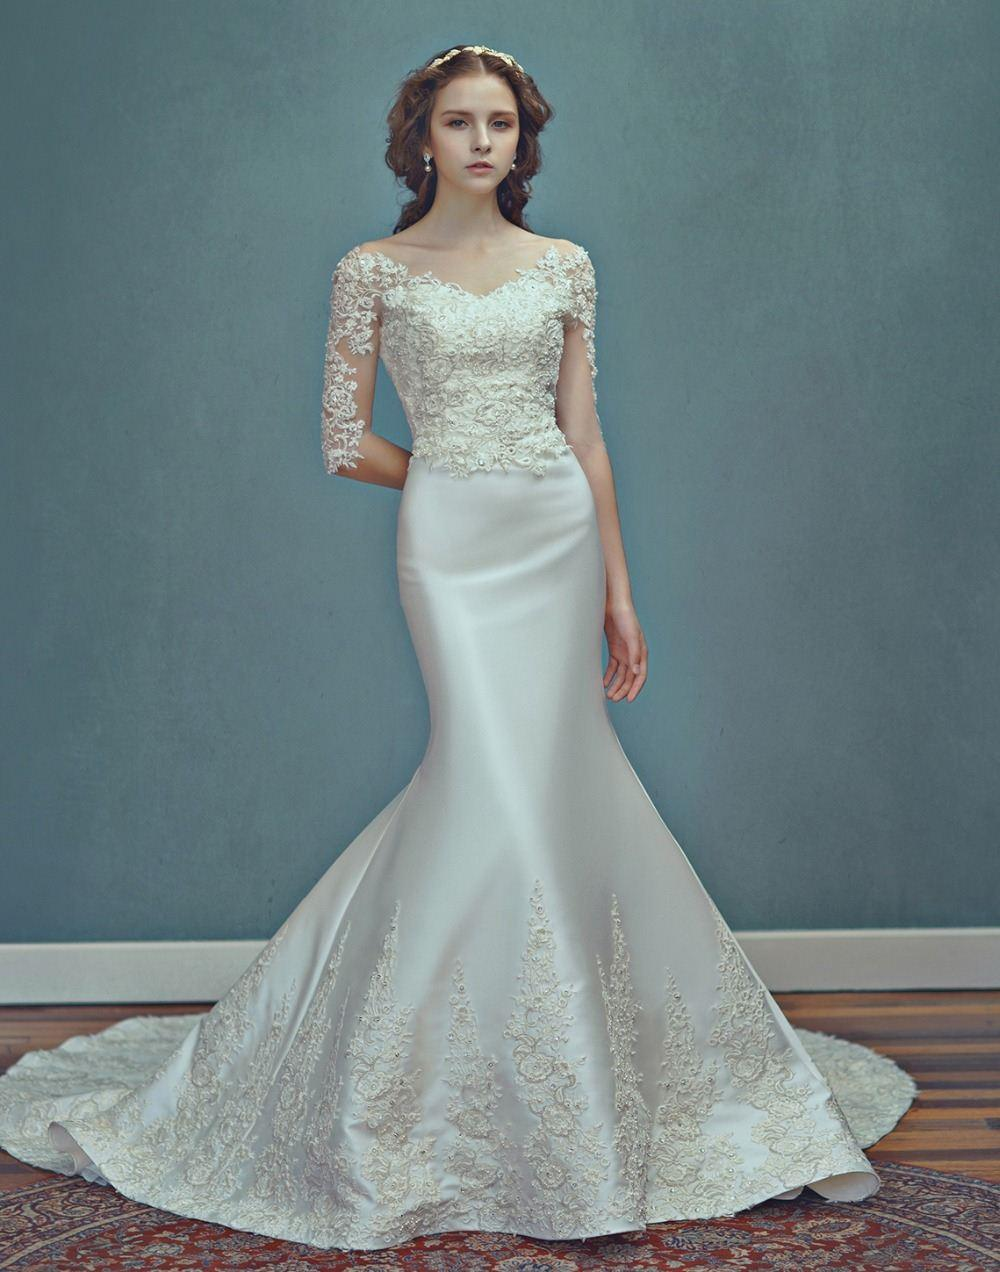 Famous Oleg Cassini Bridal Gowns Gallery - All Wedding Dresses ...